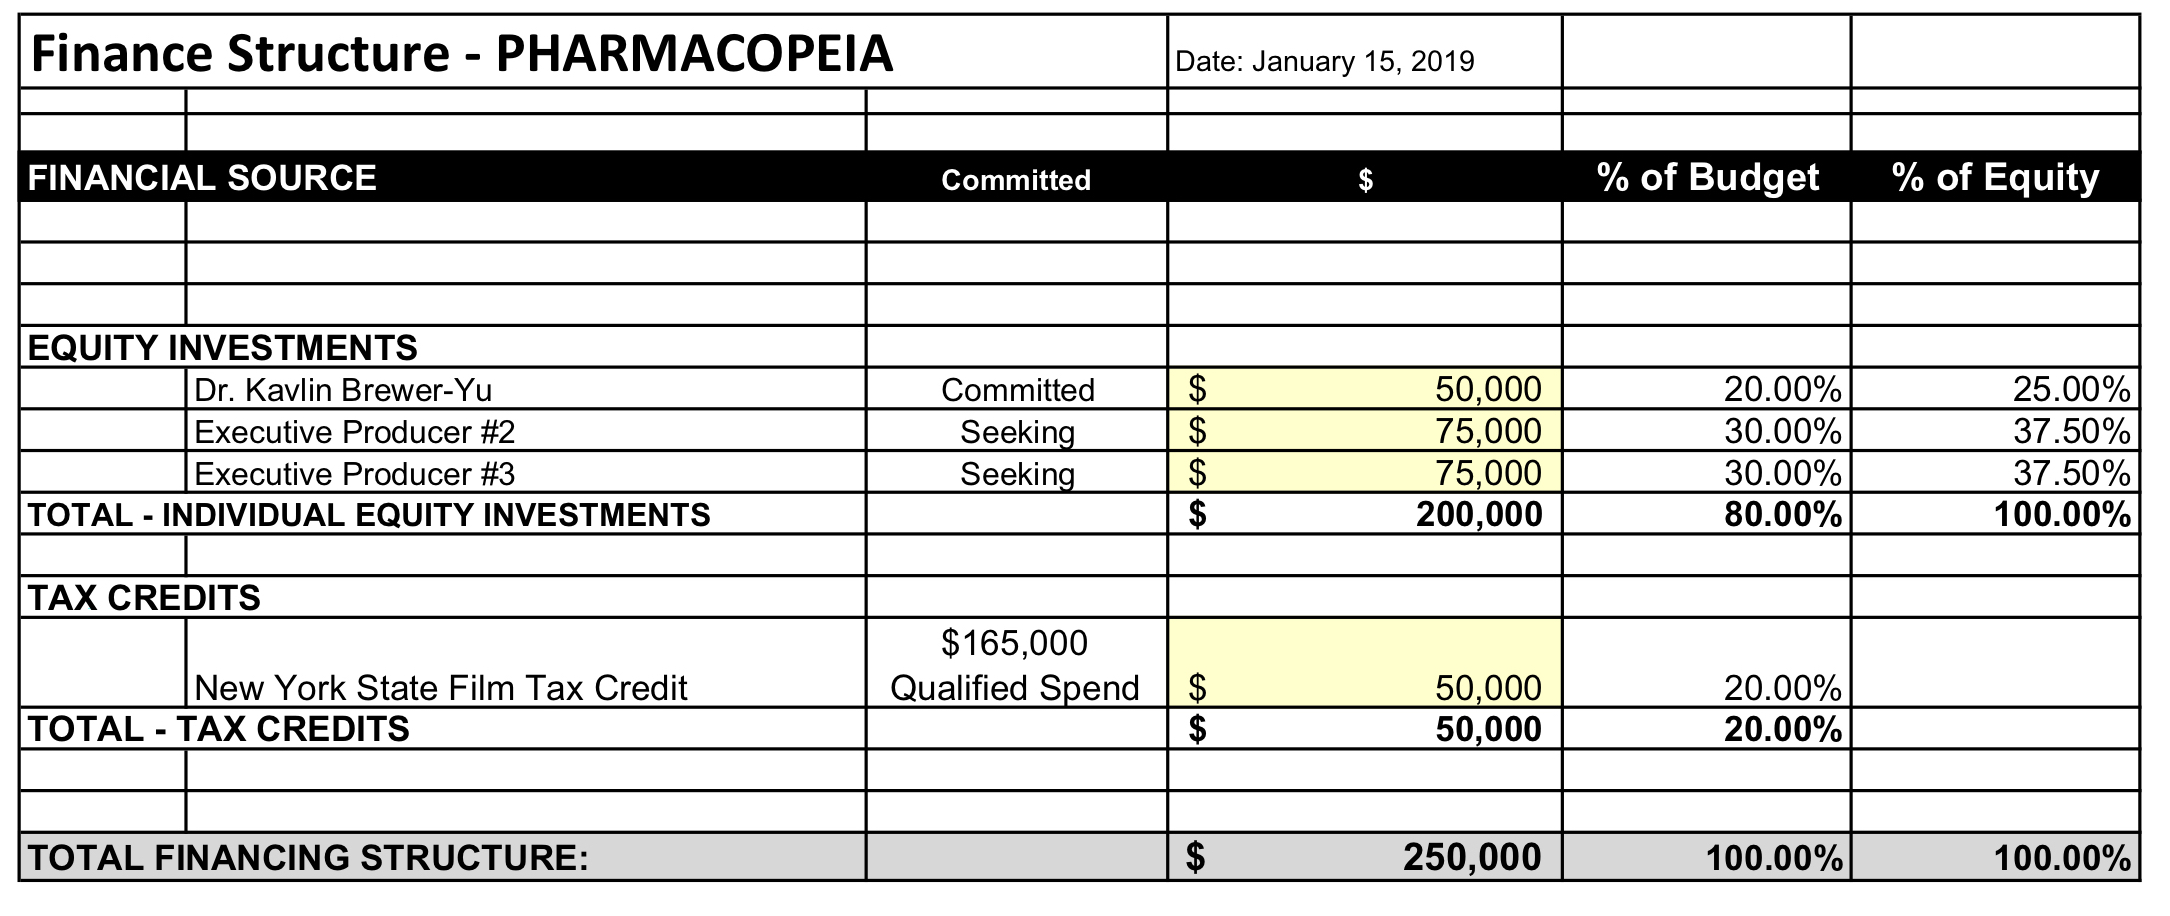 PHARMACOPEIA-Finance Plan-250k-2019-01-15.jpg